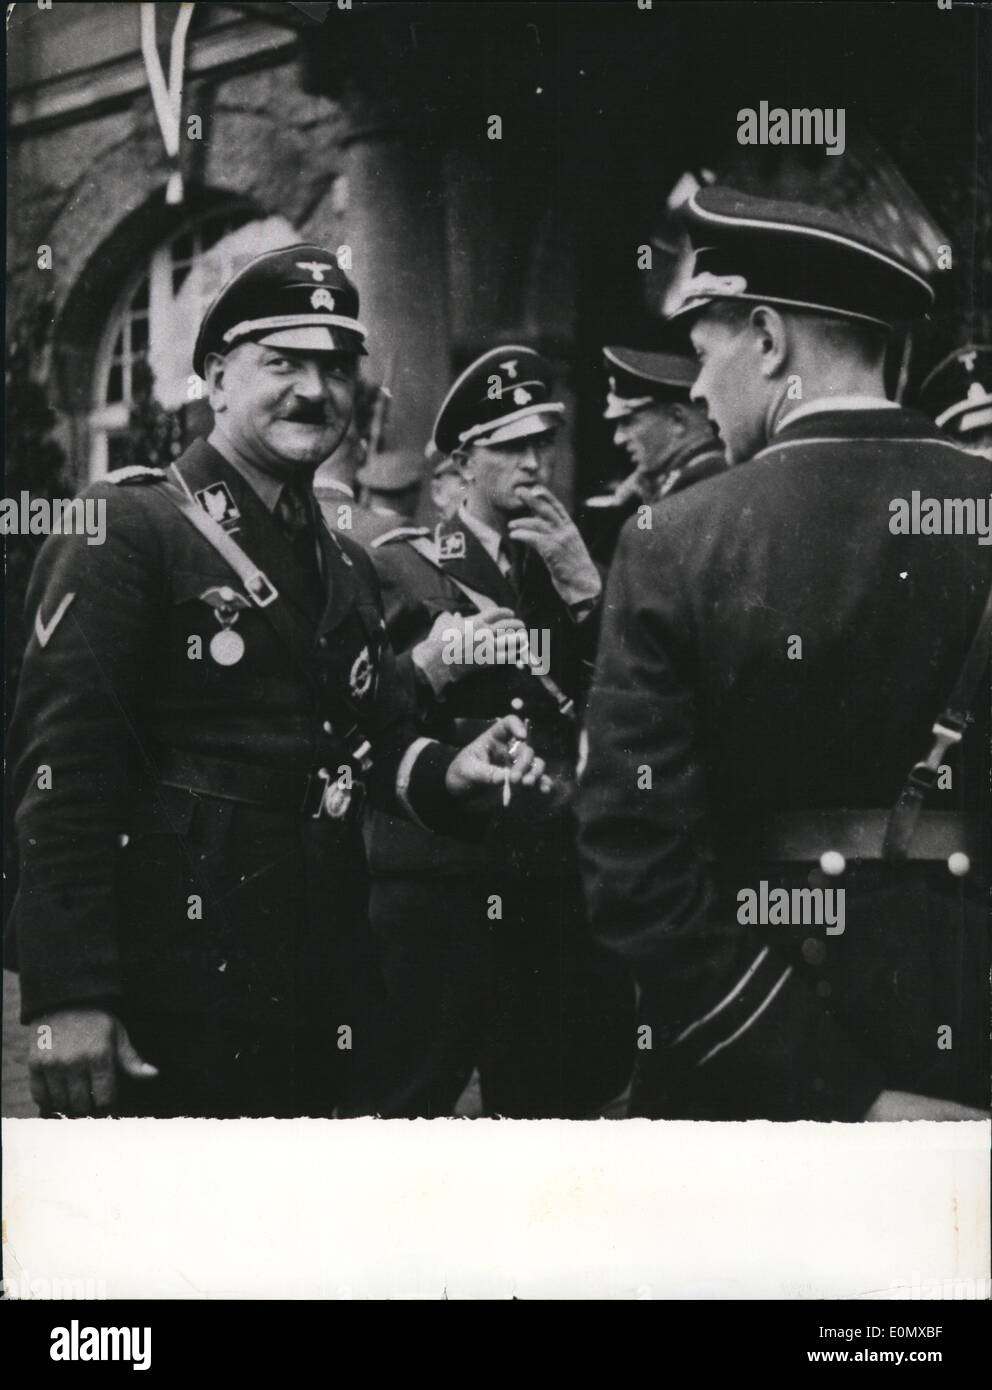 Aug. 08, 1956 - 22 Years after the Roehm-rist accusation against Sop Dietrich:The 64 Years old Sop Dietrich who left the Lanisberg-prison a short times ago is accused by the Munich court to have had informed the six leading Re chm-riots about Hitler's decision to shoot and Districh should also have given the order to shoot them. Photo Shows Sop Dietrich (left) as SS-Obergruppen-leader in 1938. - Stock Image